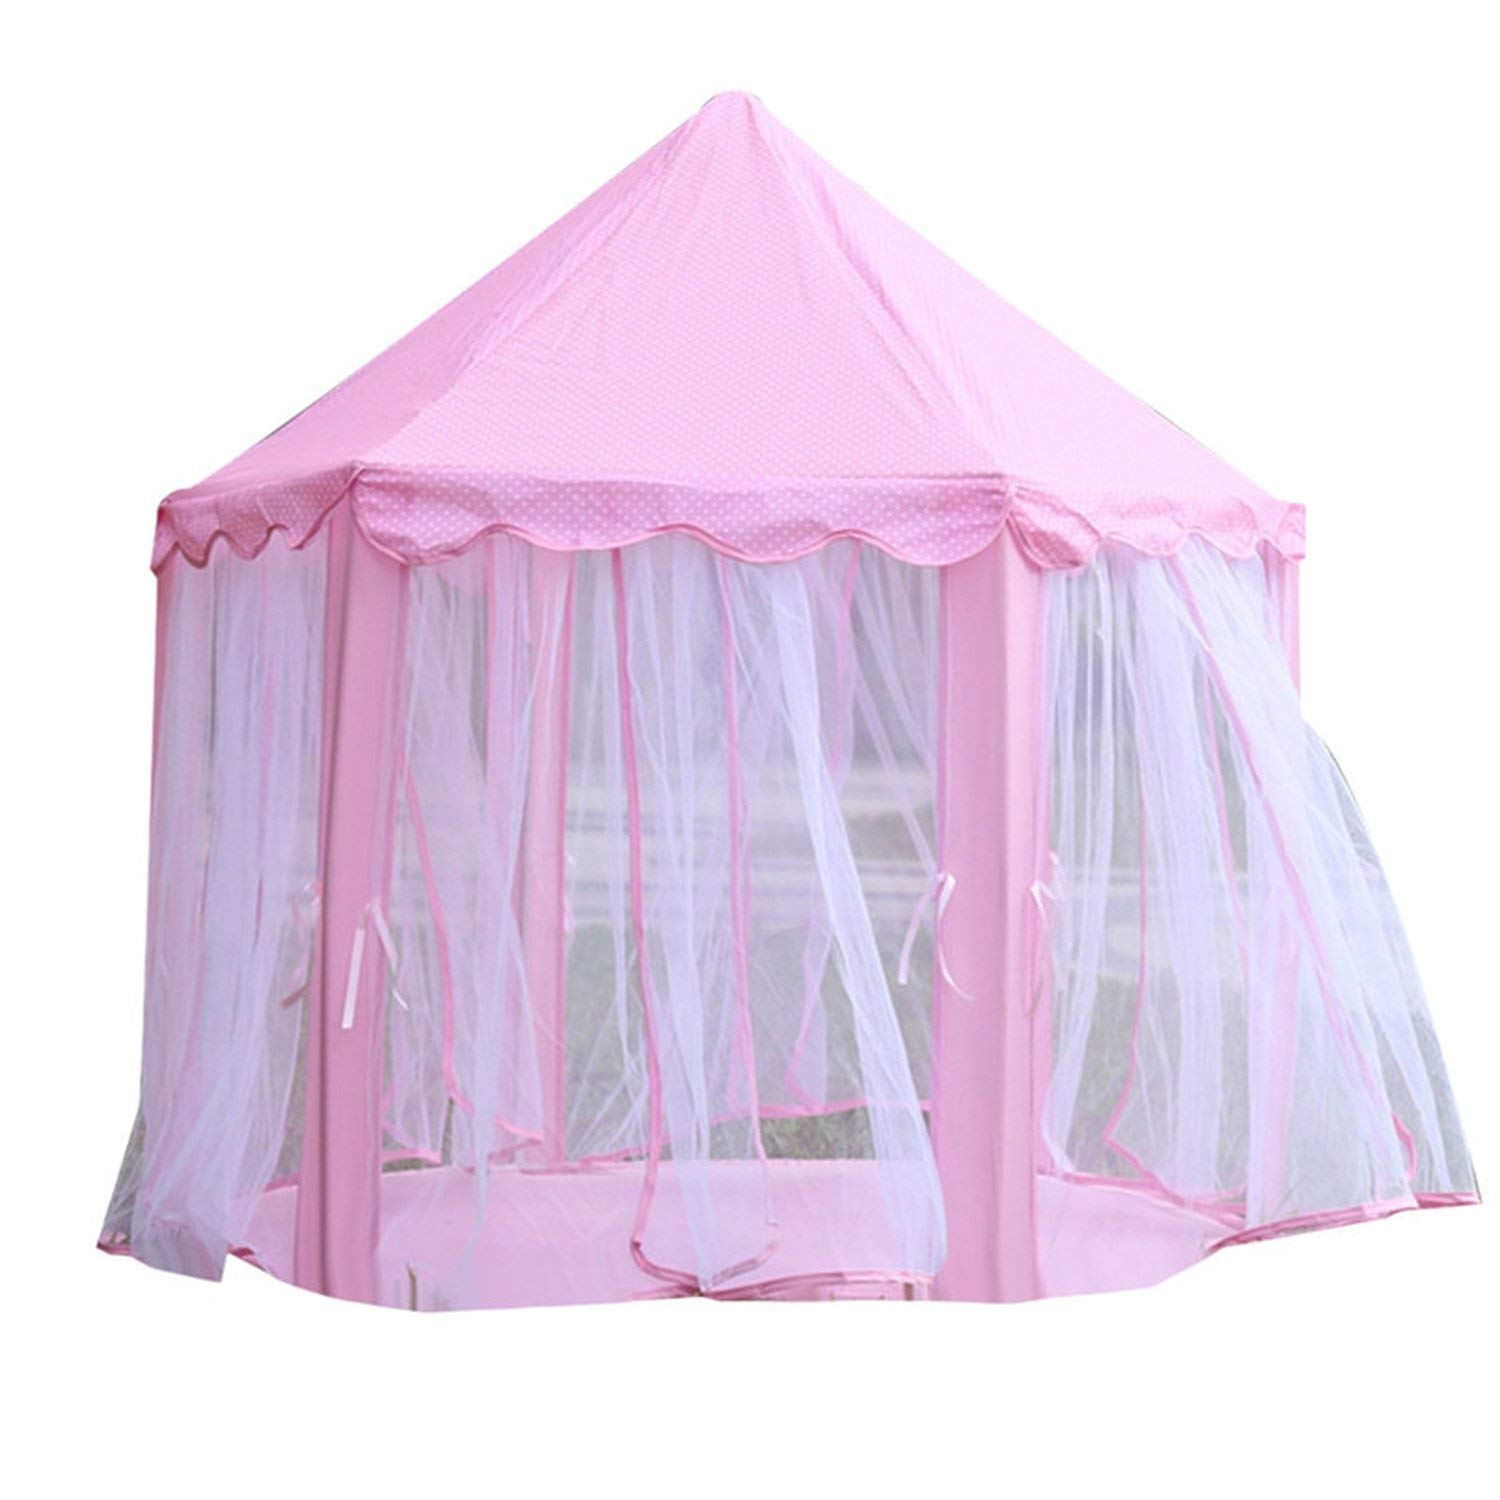 Mosquito Net Bed Tent Children's Bed Tent Outdoor Kids Funny Portable Mosquito Net,Pink,See Below for Size Descriptions